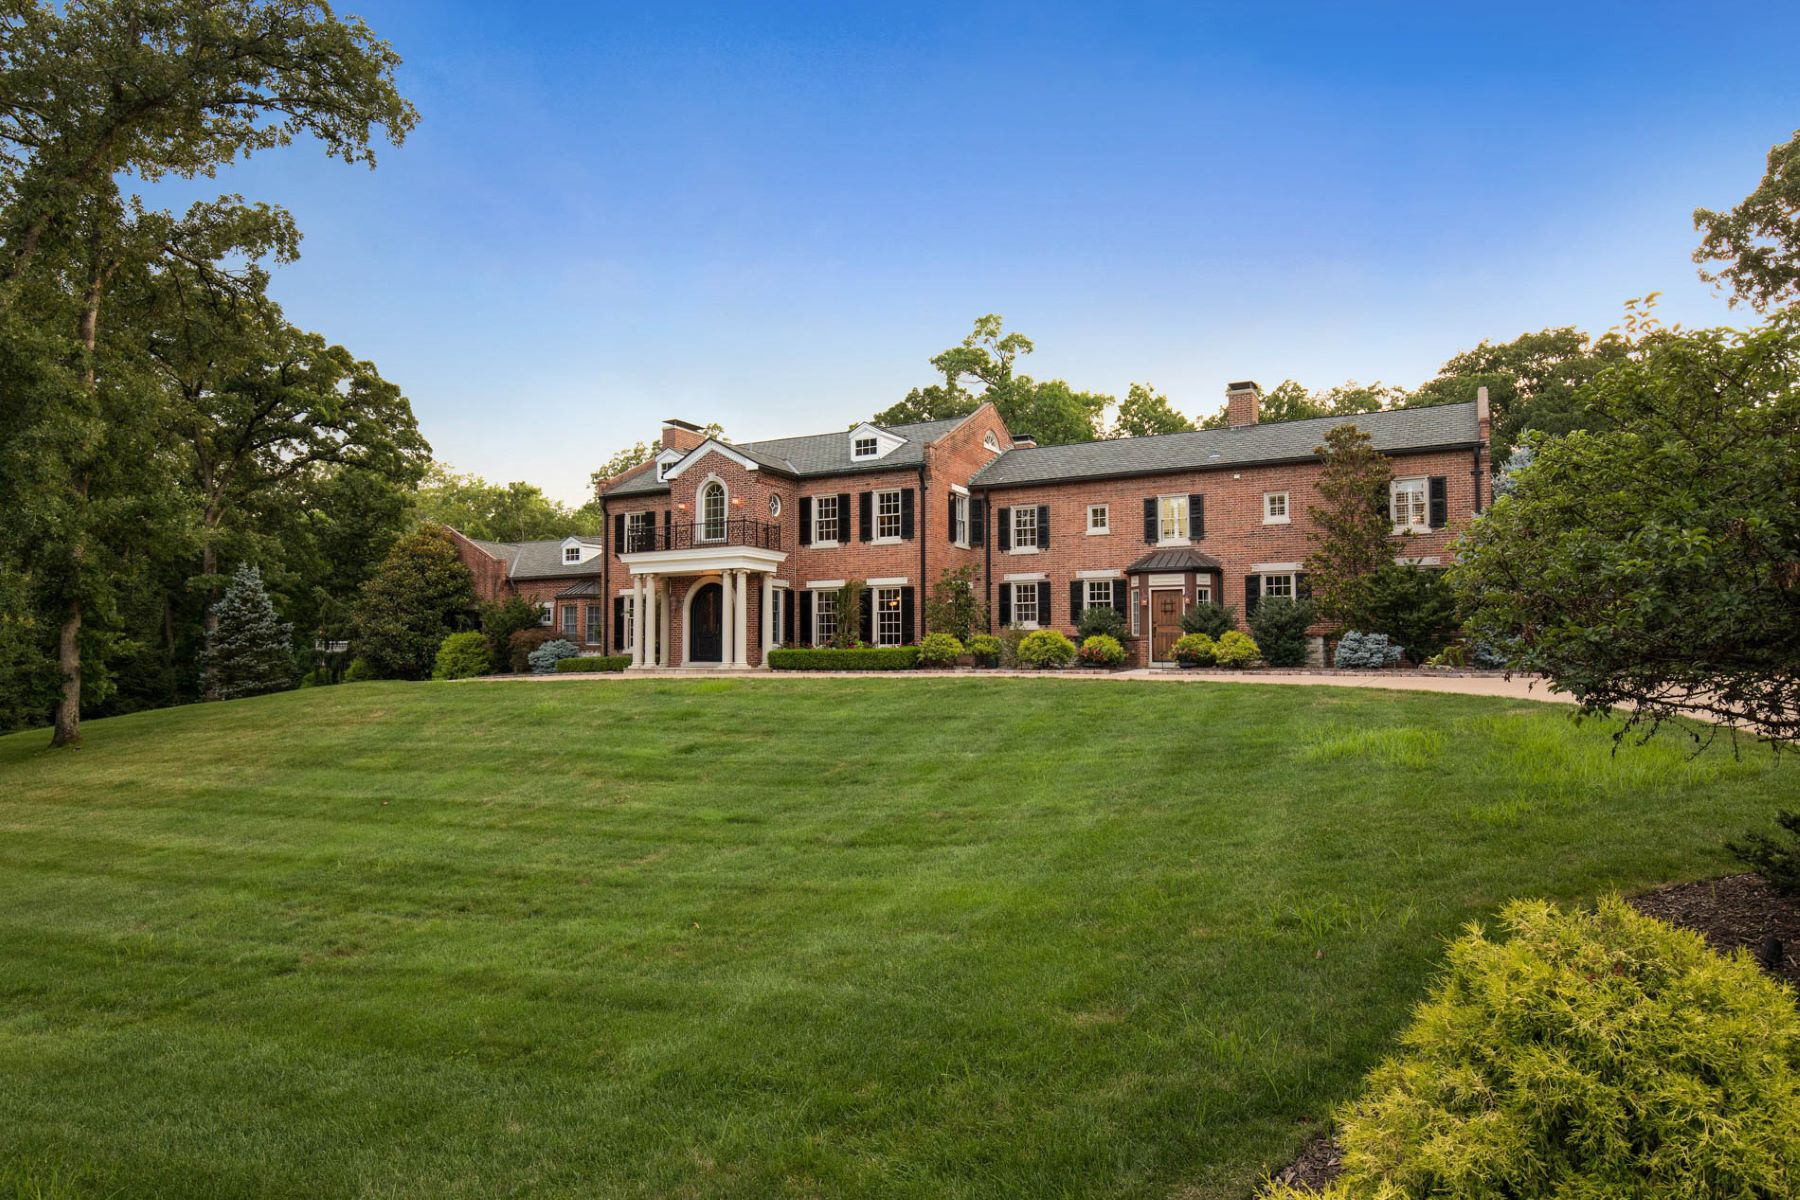 Single Family Home for Sale at Grand Estate in Saint Louis Country Club 18 Pine Valley Drive Ladue, Missouri 63124 United States